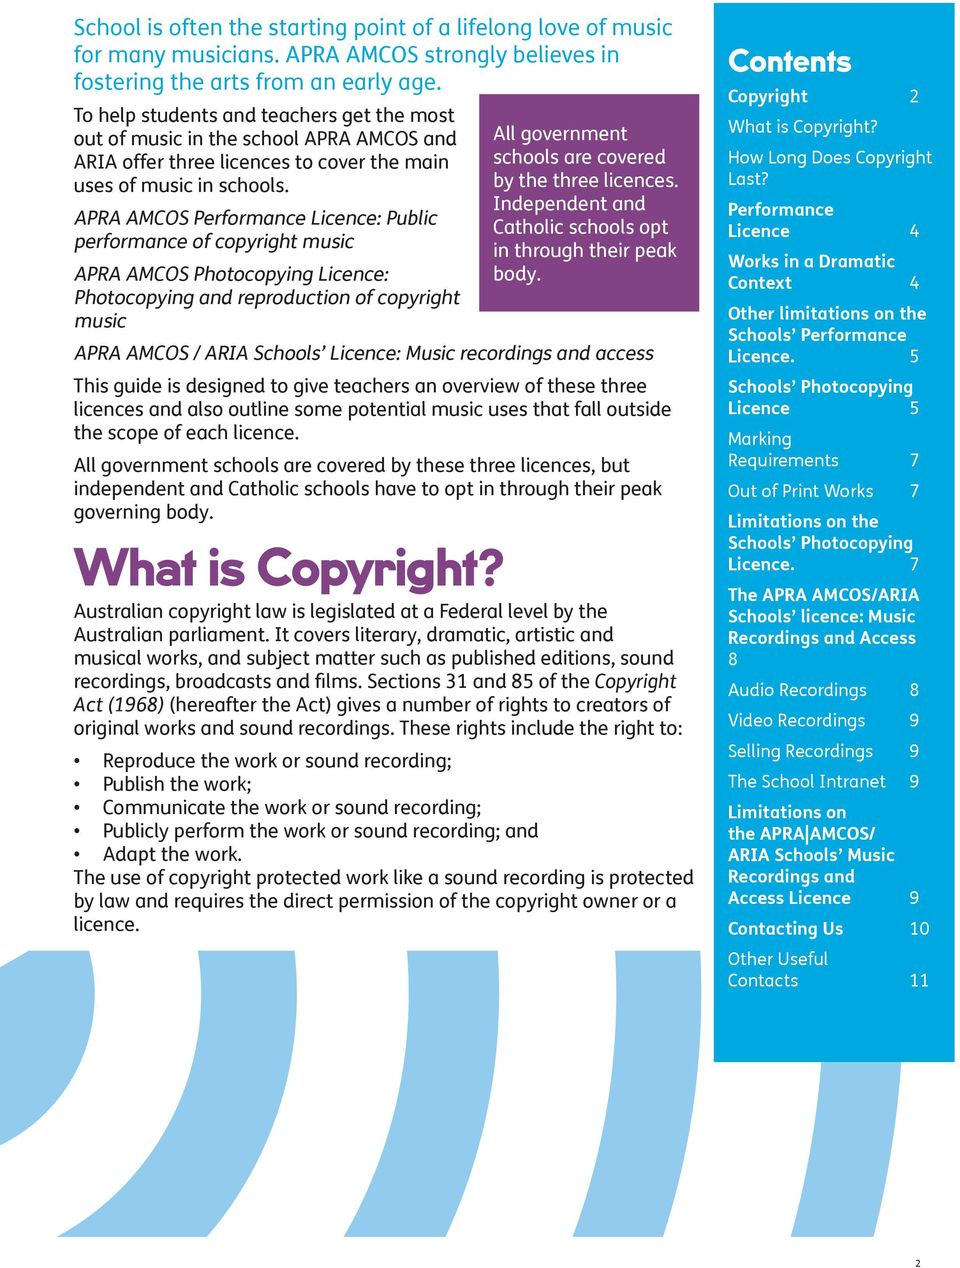 APRA AMCOS Performance Licence: Public performance of copyright music APRA AMCOS Photocopying Licence: Photocopying and reproduction of copyright music All government schools are covered by the three